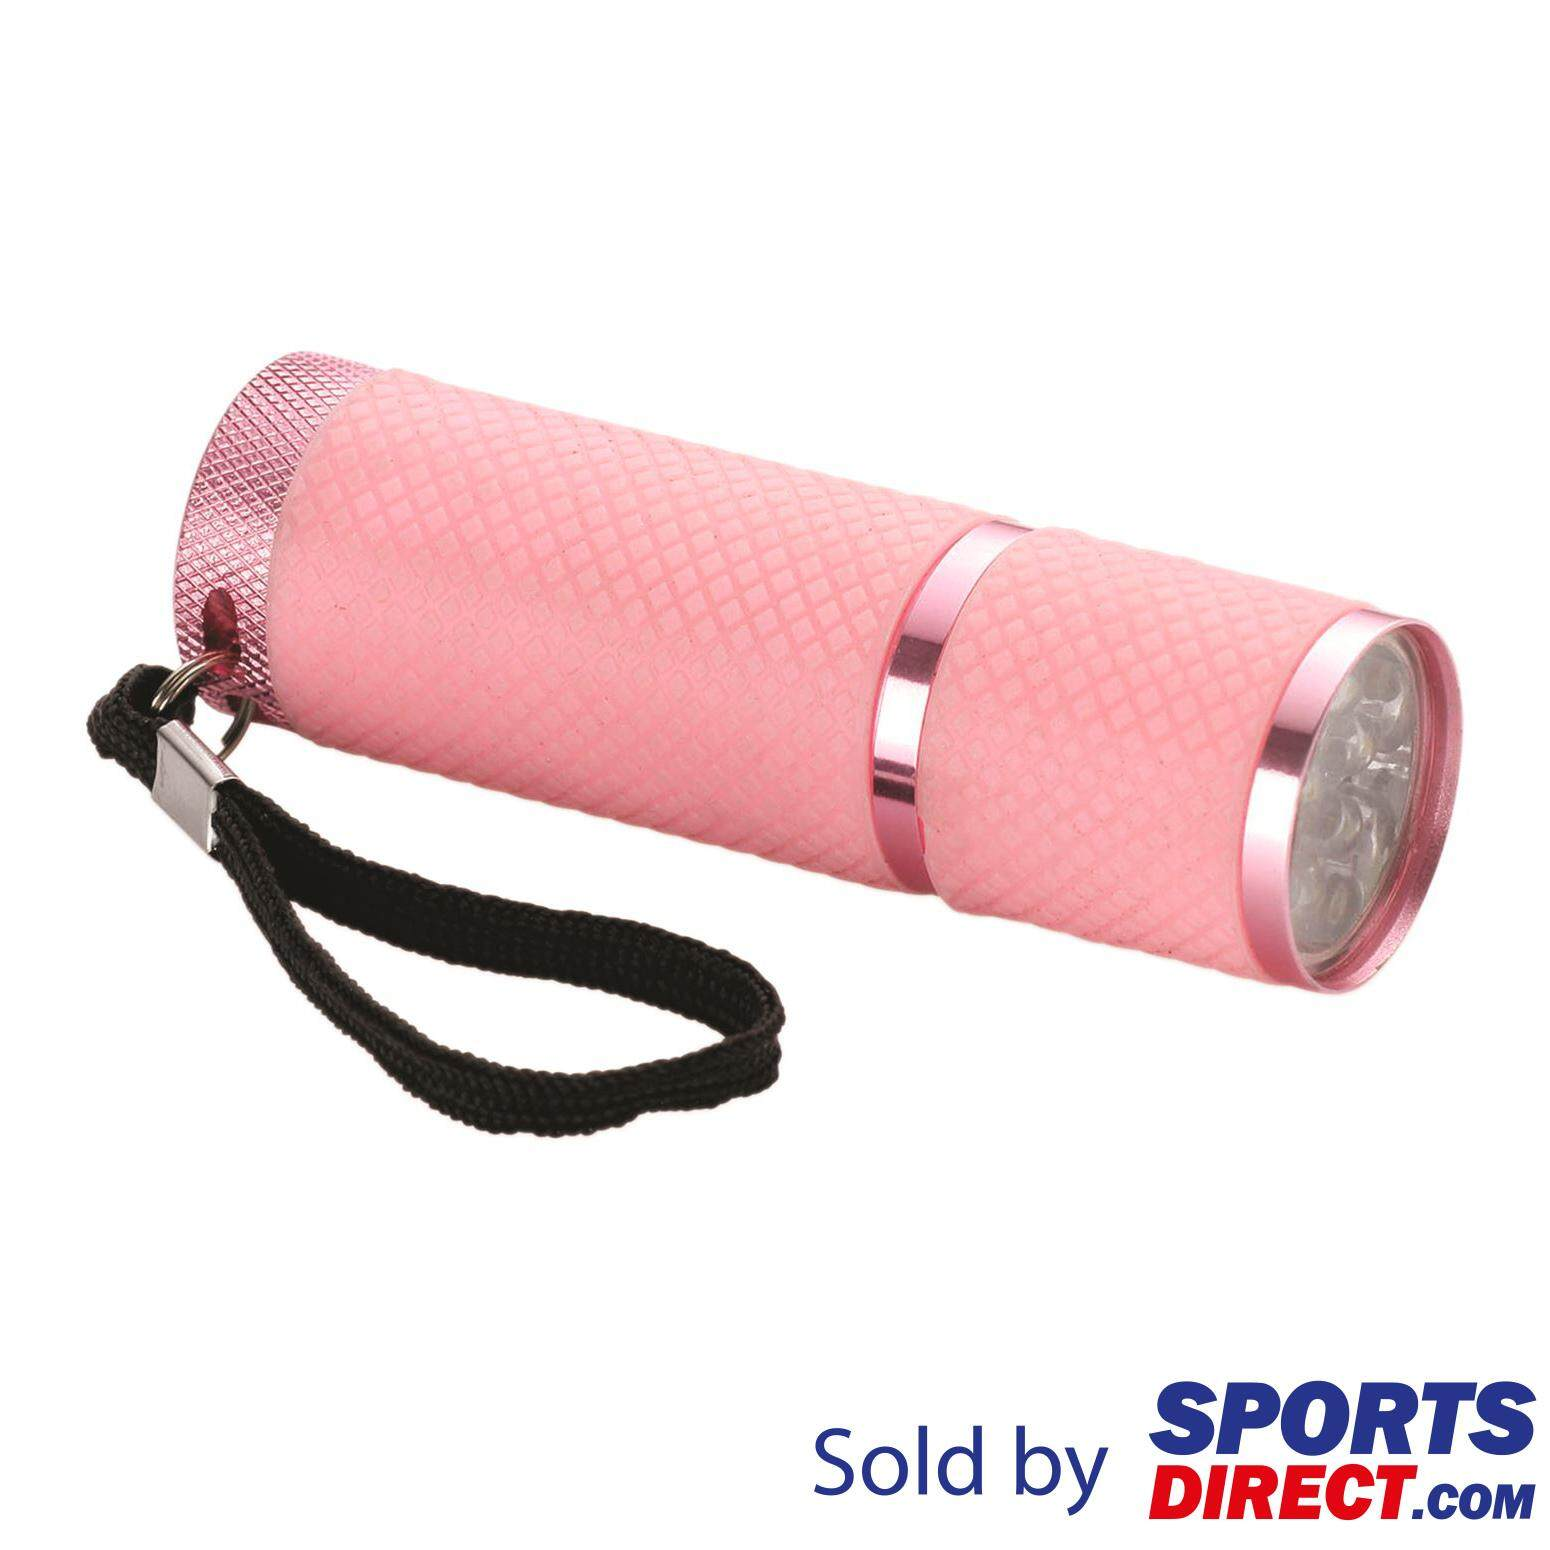 Gelert Lumi Glow Led Torch (pink) By Sports Direct Mst Sdn Bhd